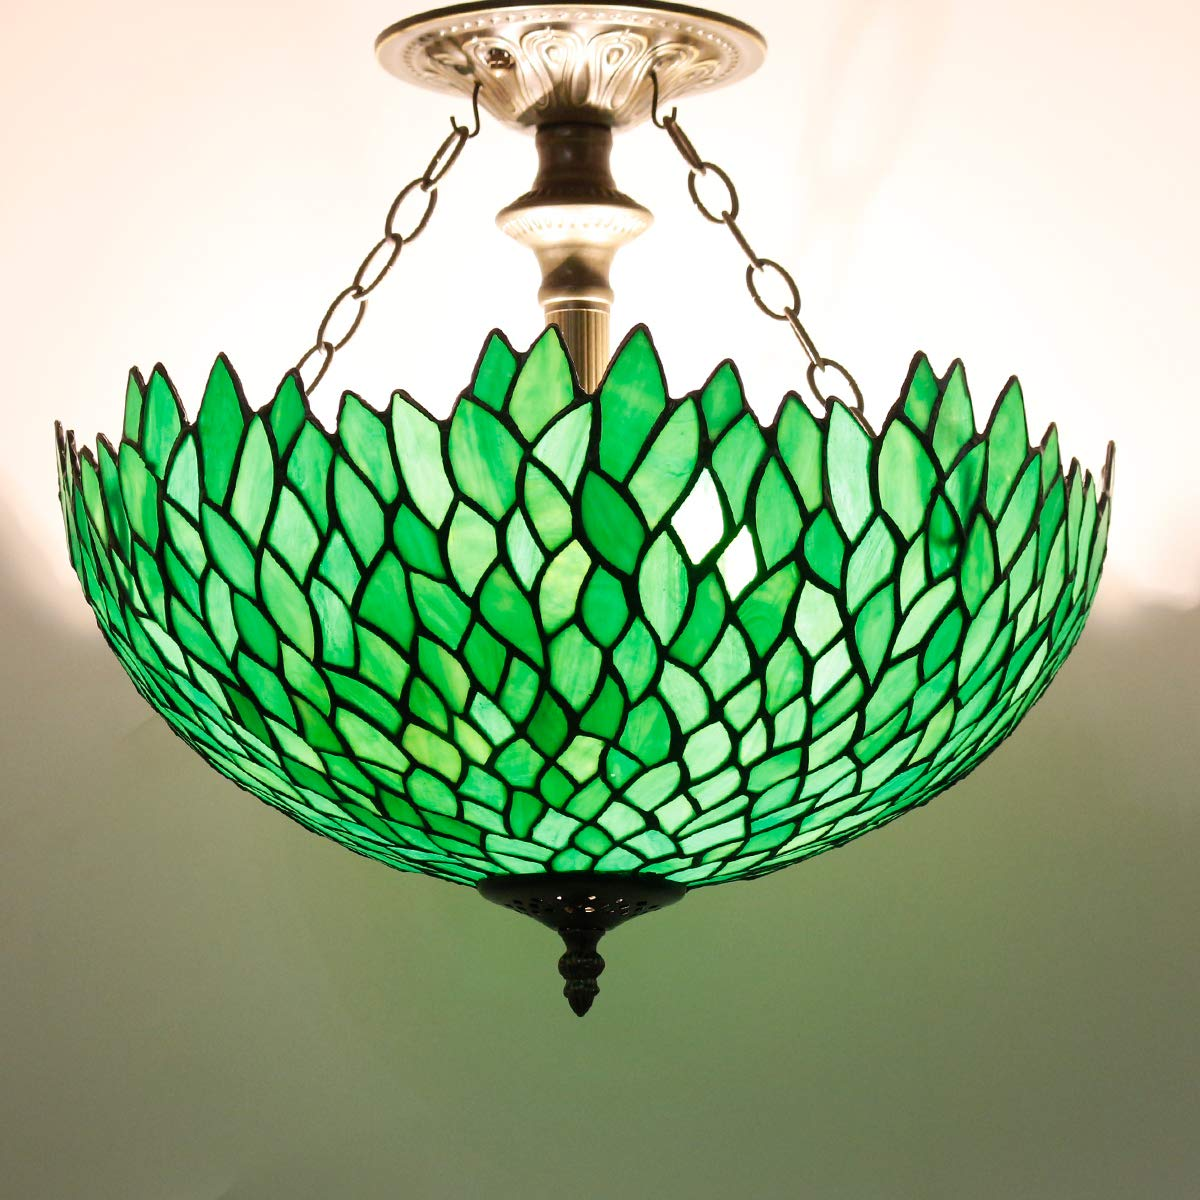 Tiffany Ceiling Fixture Lamp Semi Flush Mount 16 Inch Green Wisteria Stained Glass Shade for Dinner Room Pendant Hanging 2 Light